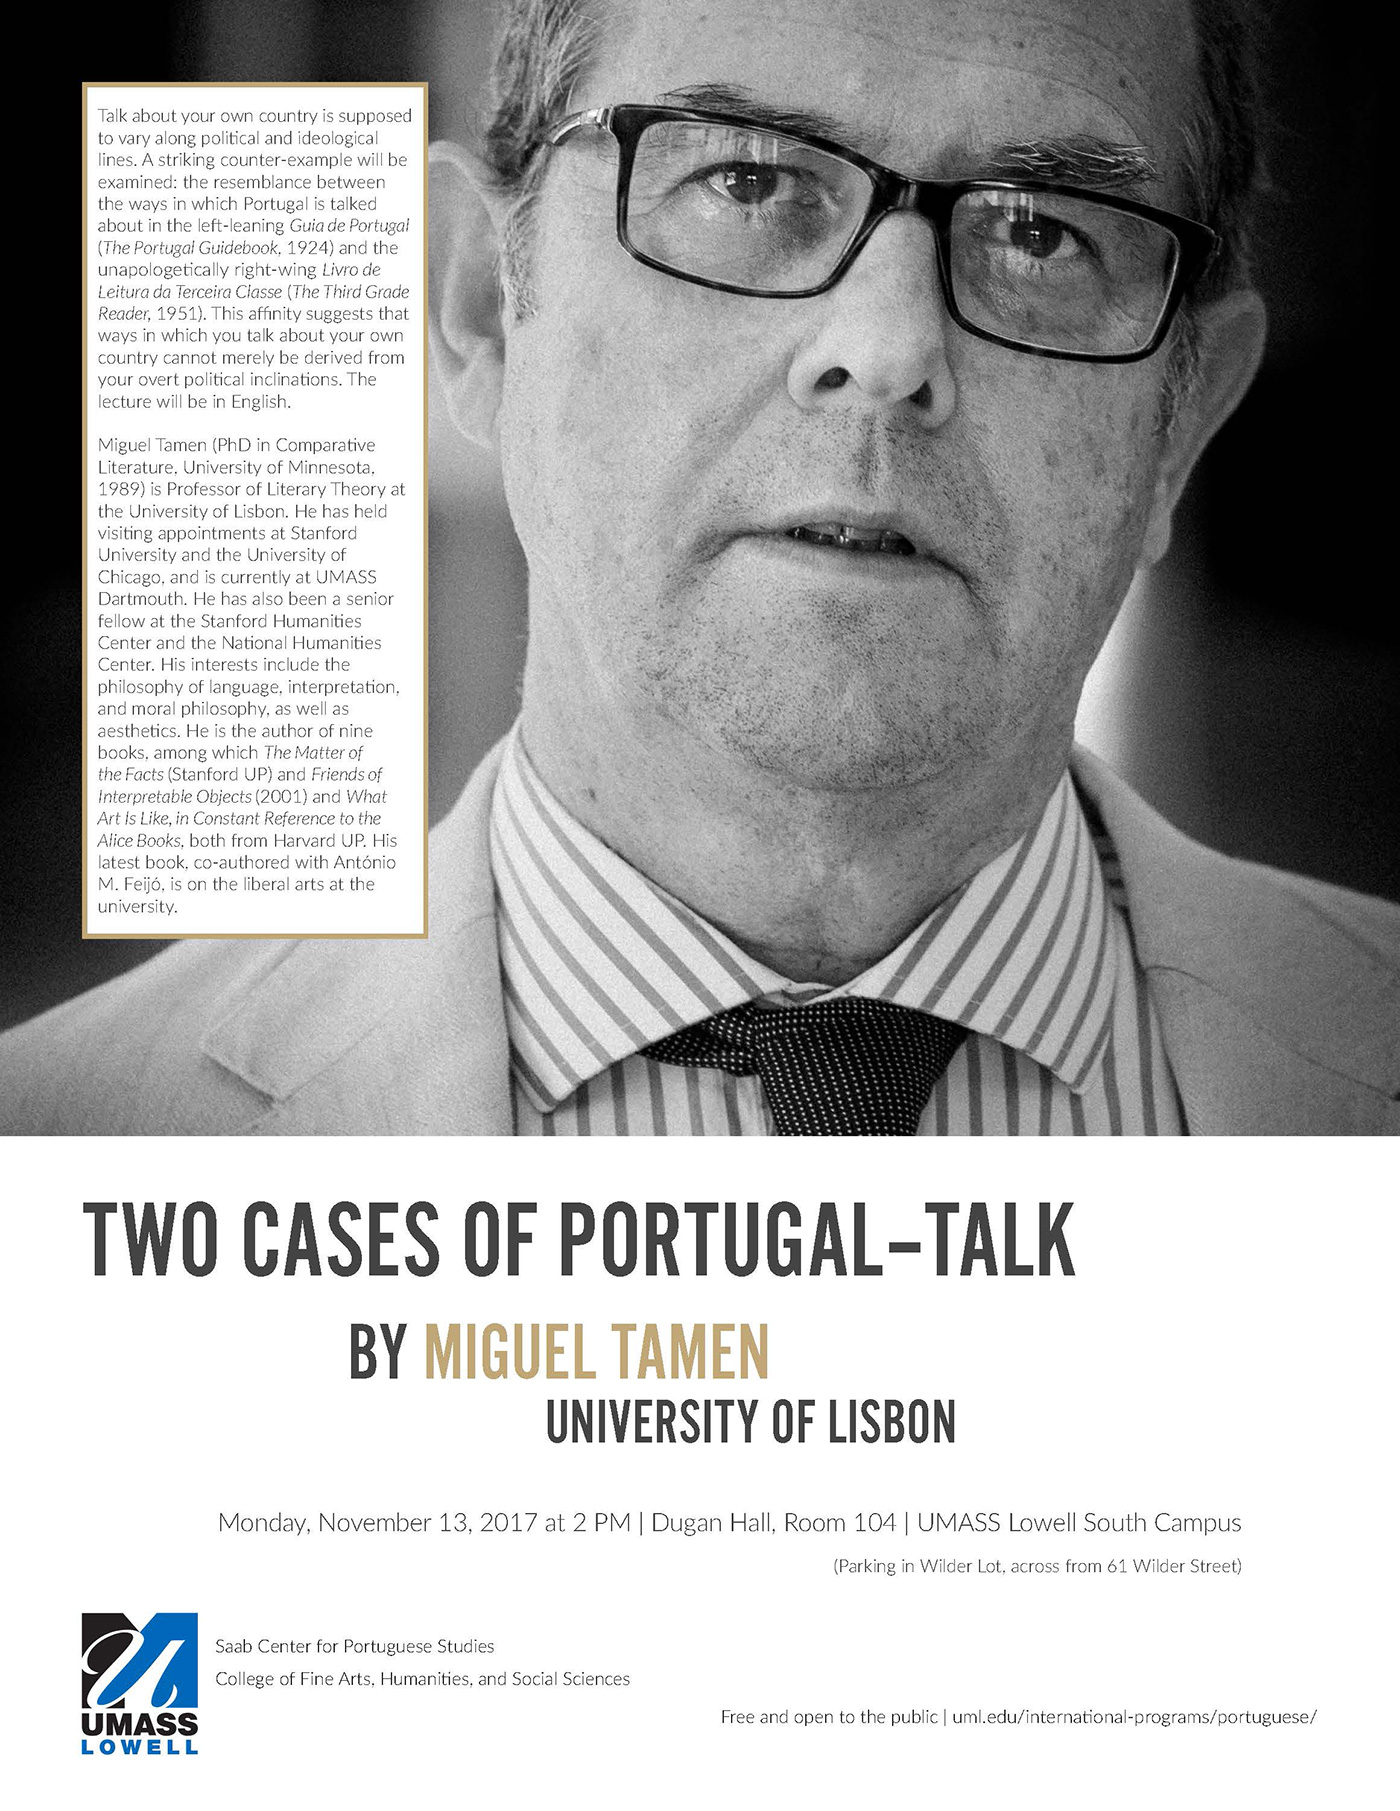 Flyer for Miguel Tamen: 2 Cases of Portugal-Talk When: Monday, November 13, 2017 at 2 p.m.  Where: Dugan Hall, Room 104, UMass Lowell South Campus